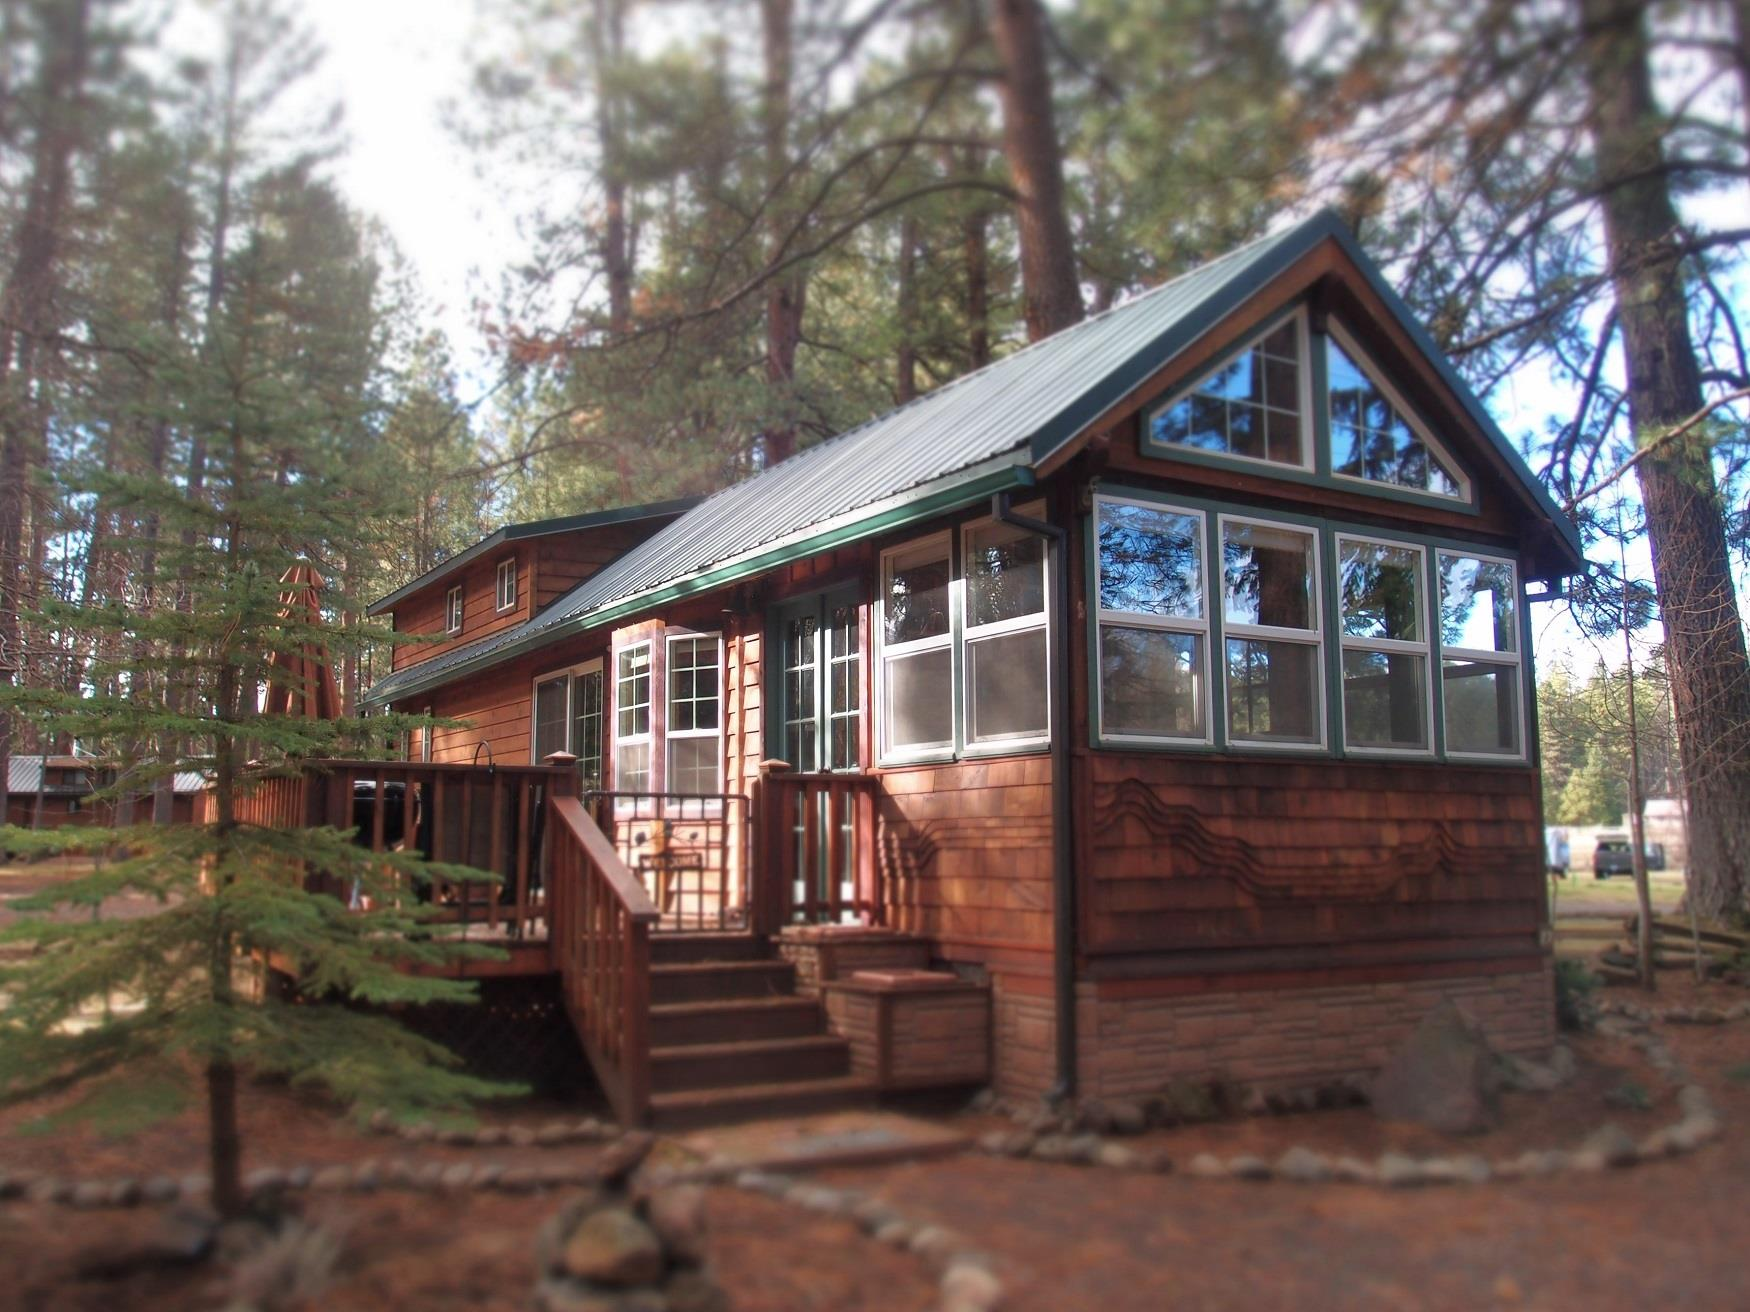 Pinecone Cabin at Cold Springs Resort in Camp Sherman, OR